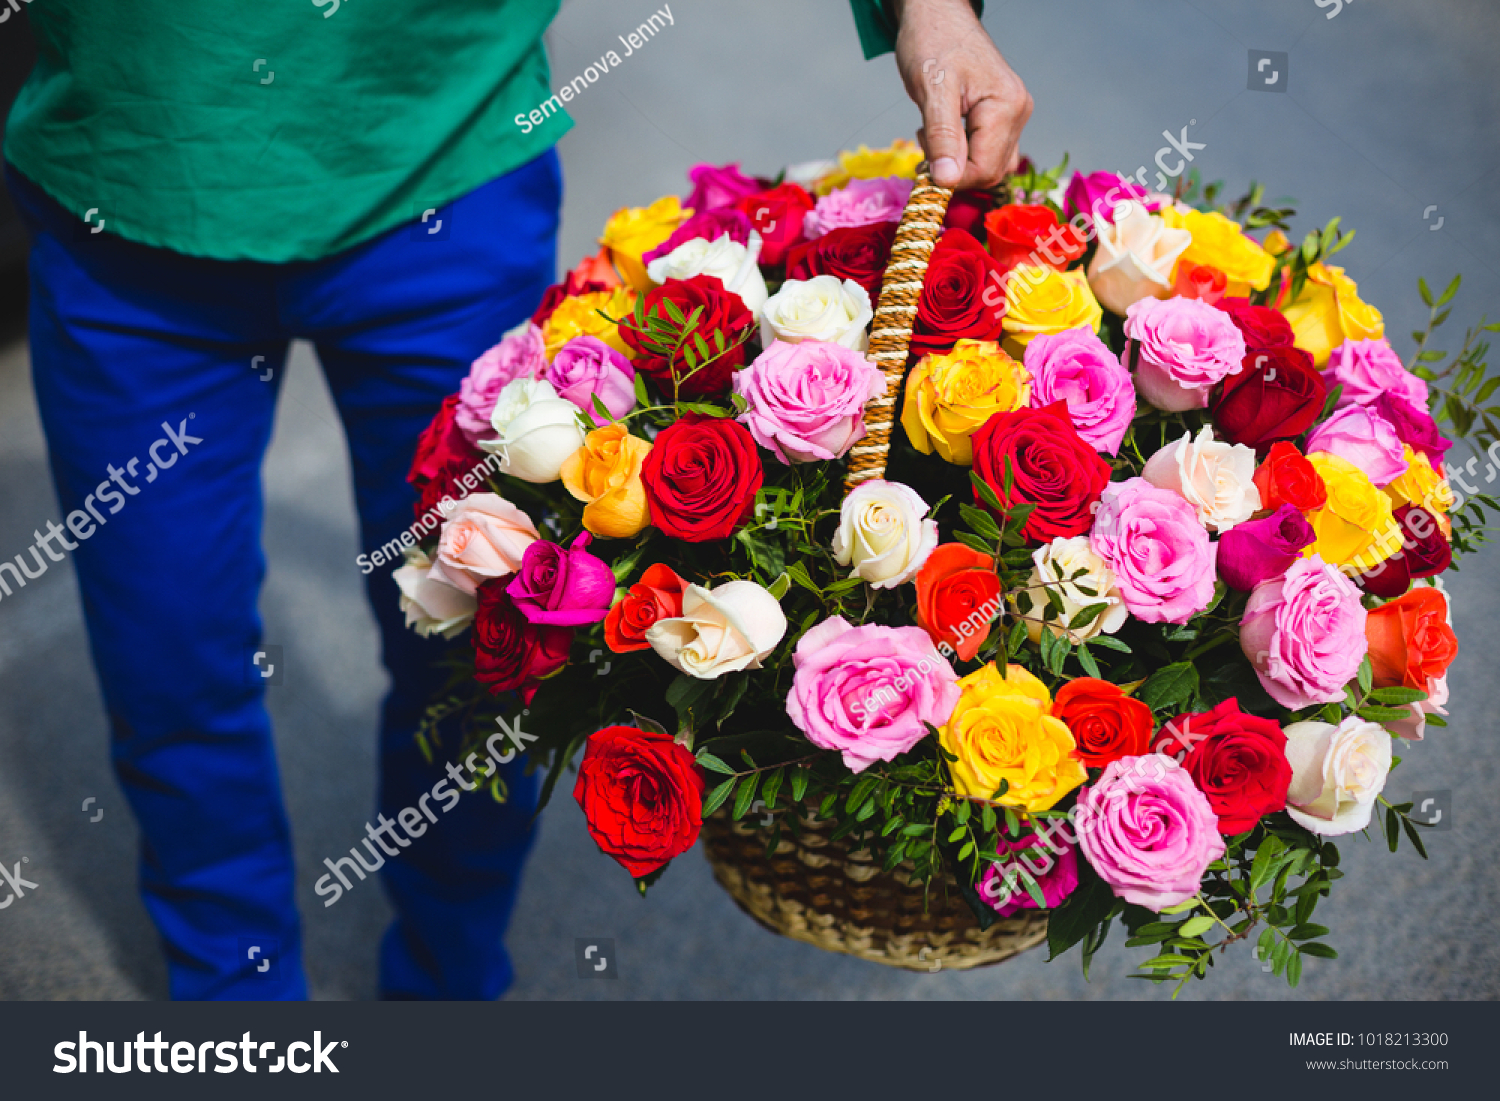 Flower Delivery Man Holding Large Basket Stock Photo Edit Now